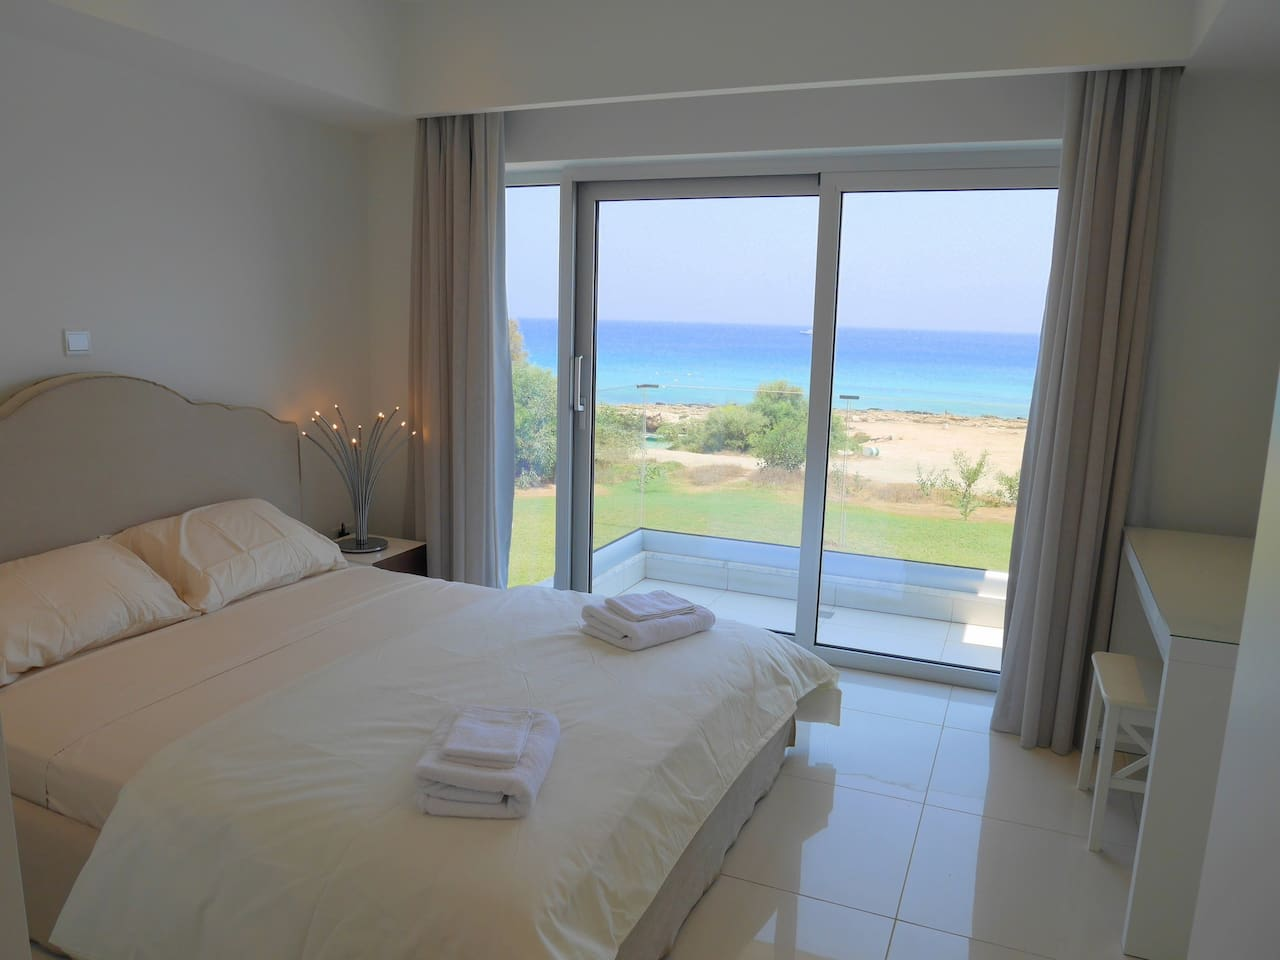 Apartment 2 Bed Luxury Apt with Large Communal Pool - B2-101 photo 19303312